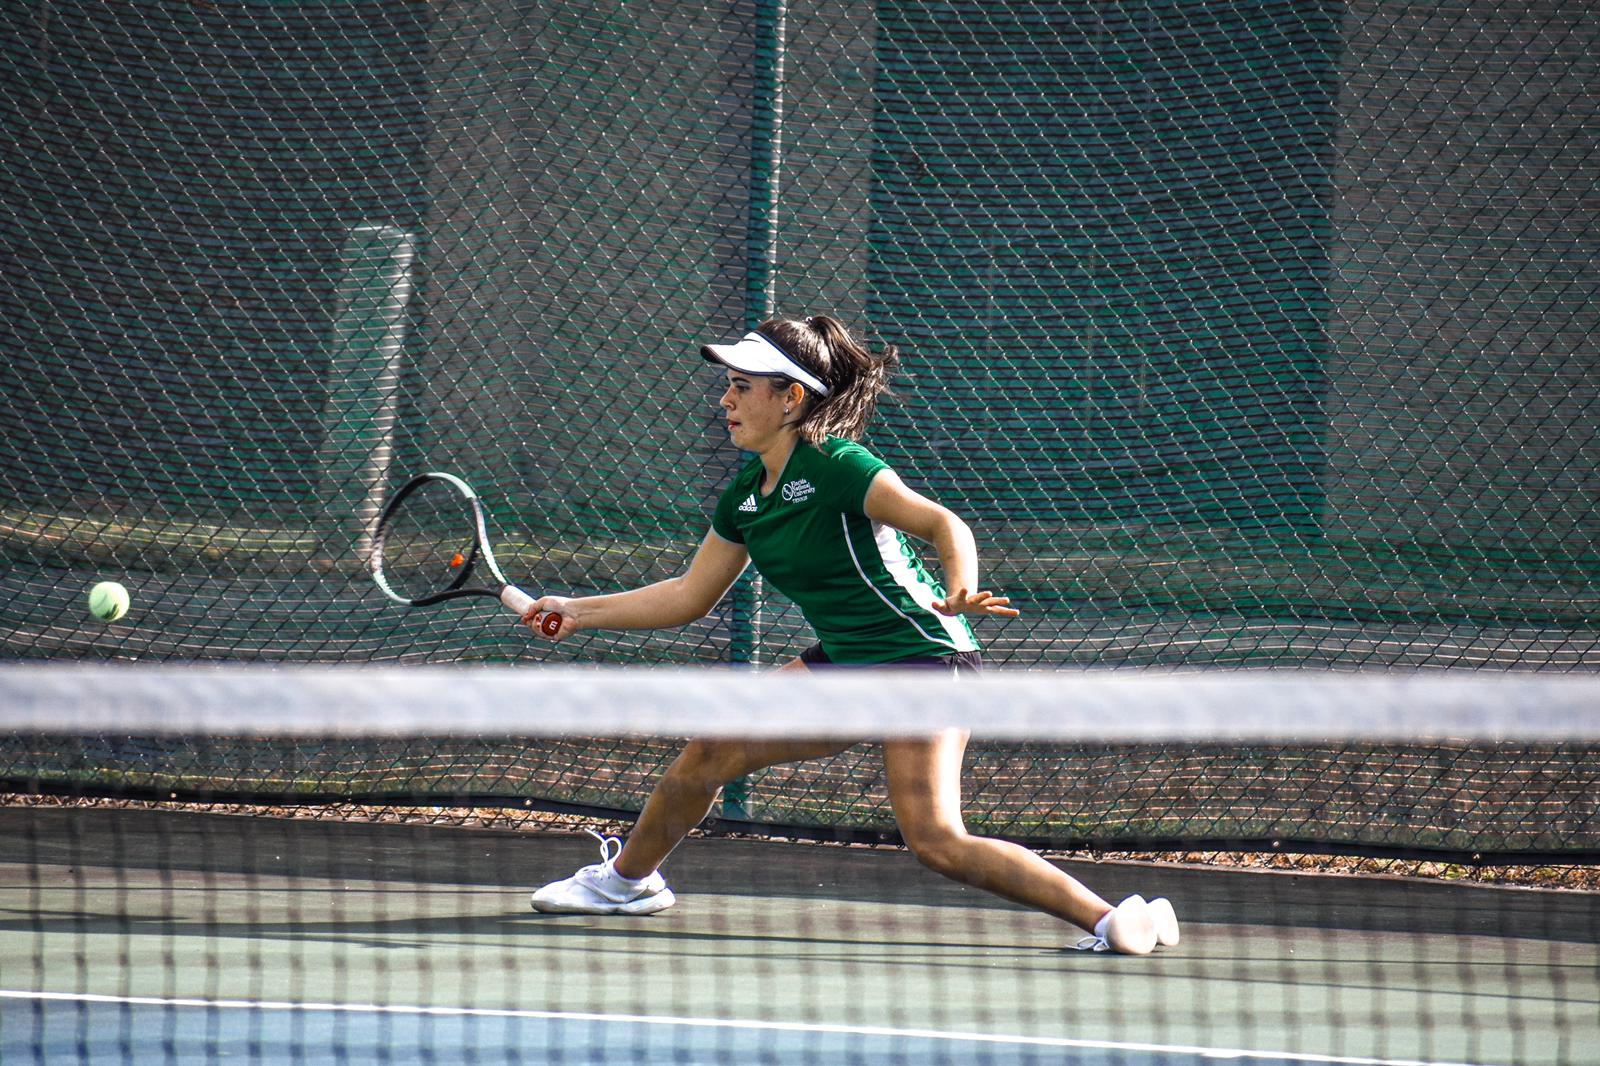 FNU tennis player Candela hitting the ball in the Game